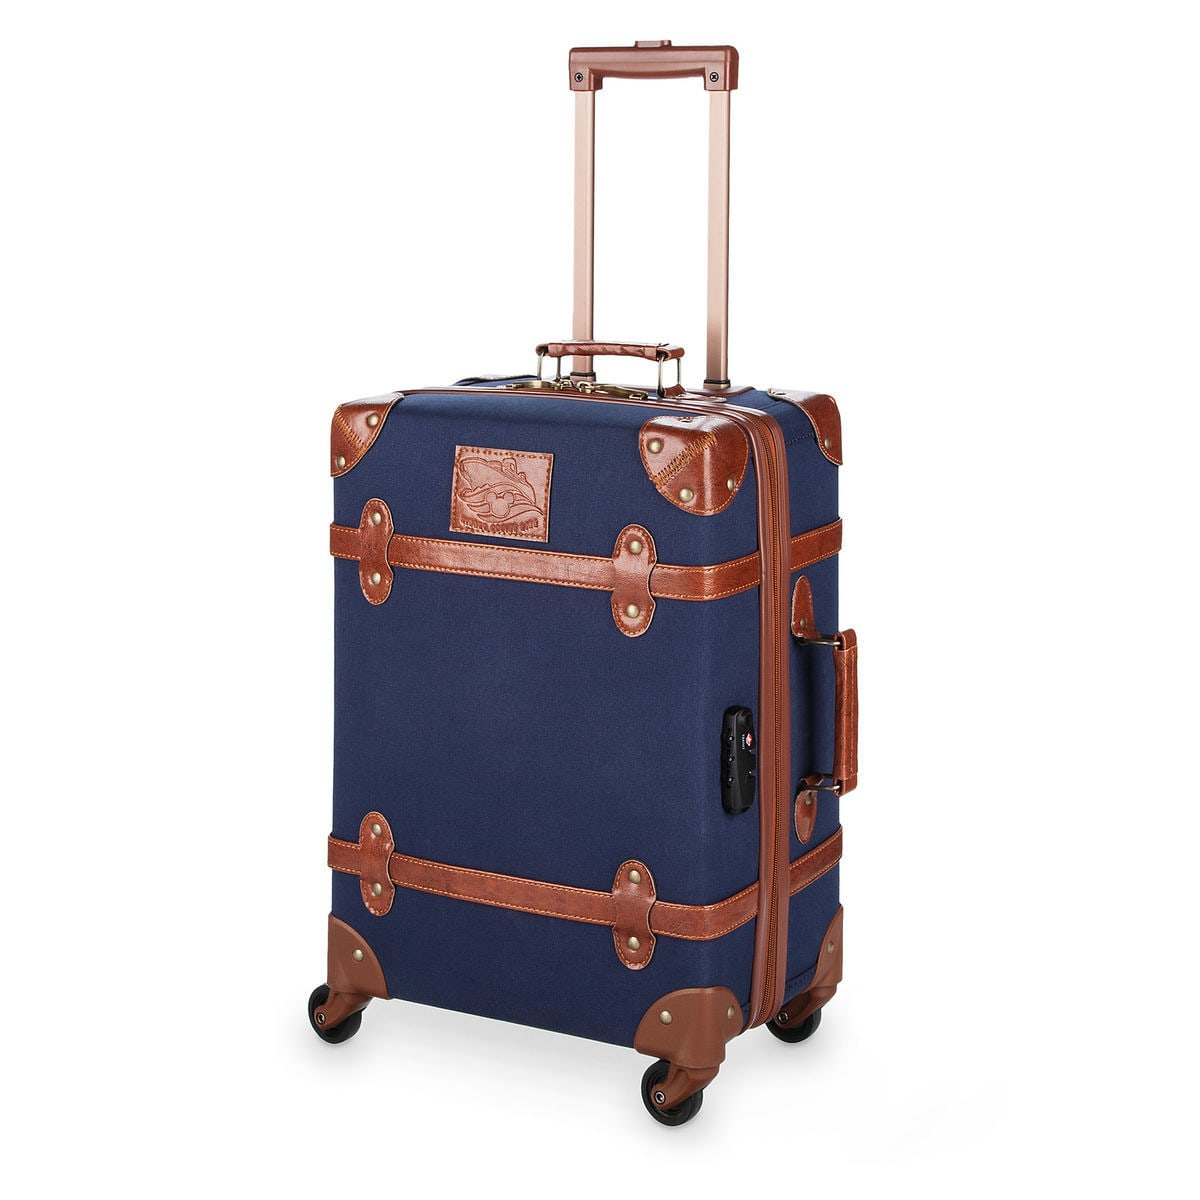 Product Image of Disney Cruise Line Rolling Luggage - 21     1 057182f5d